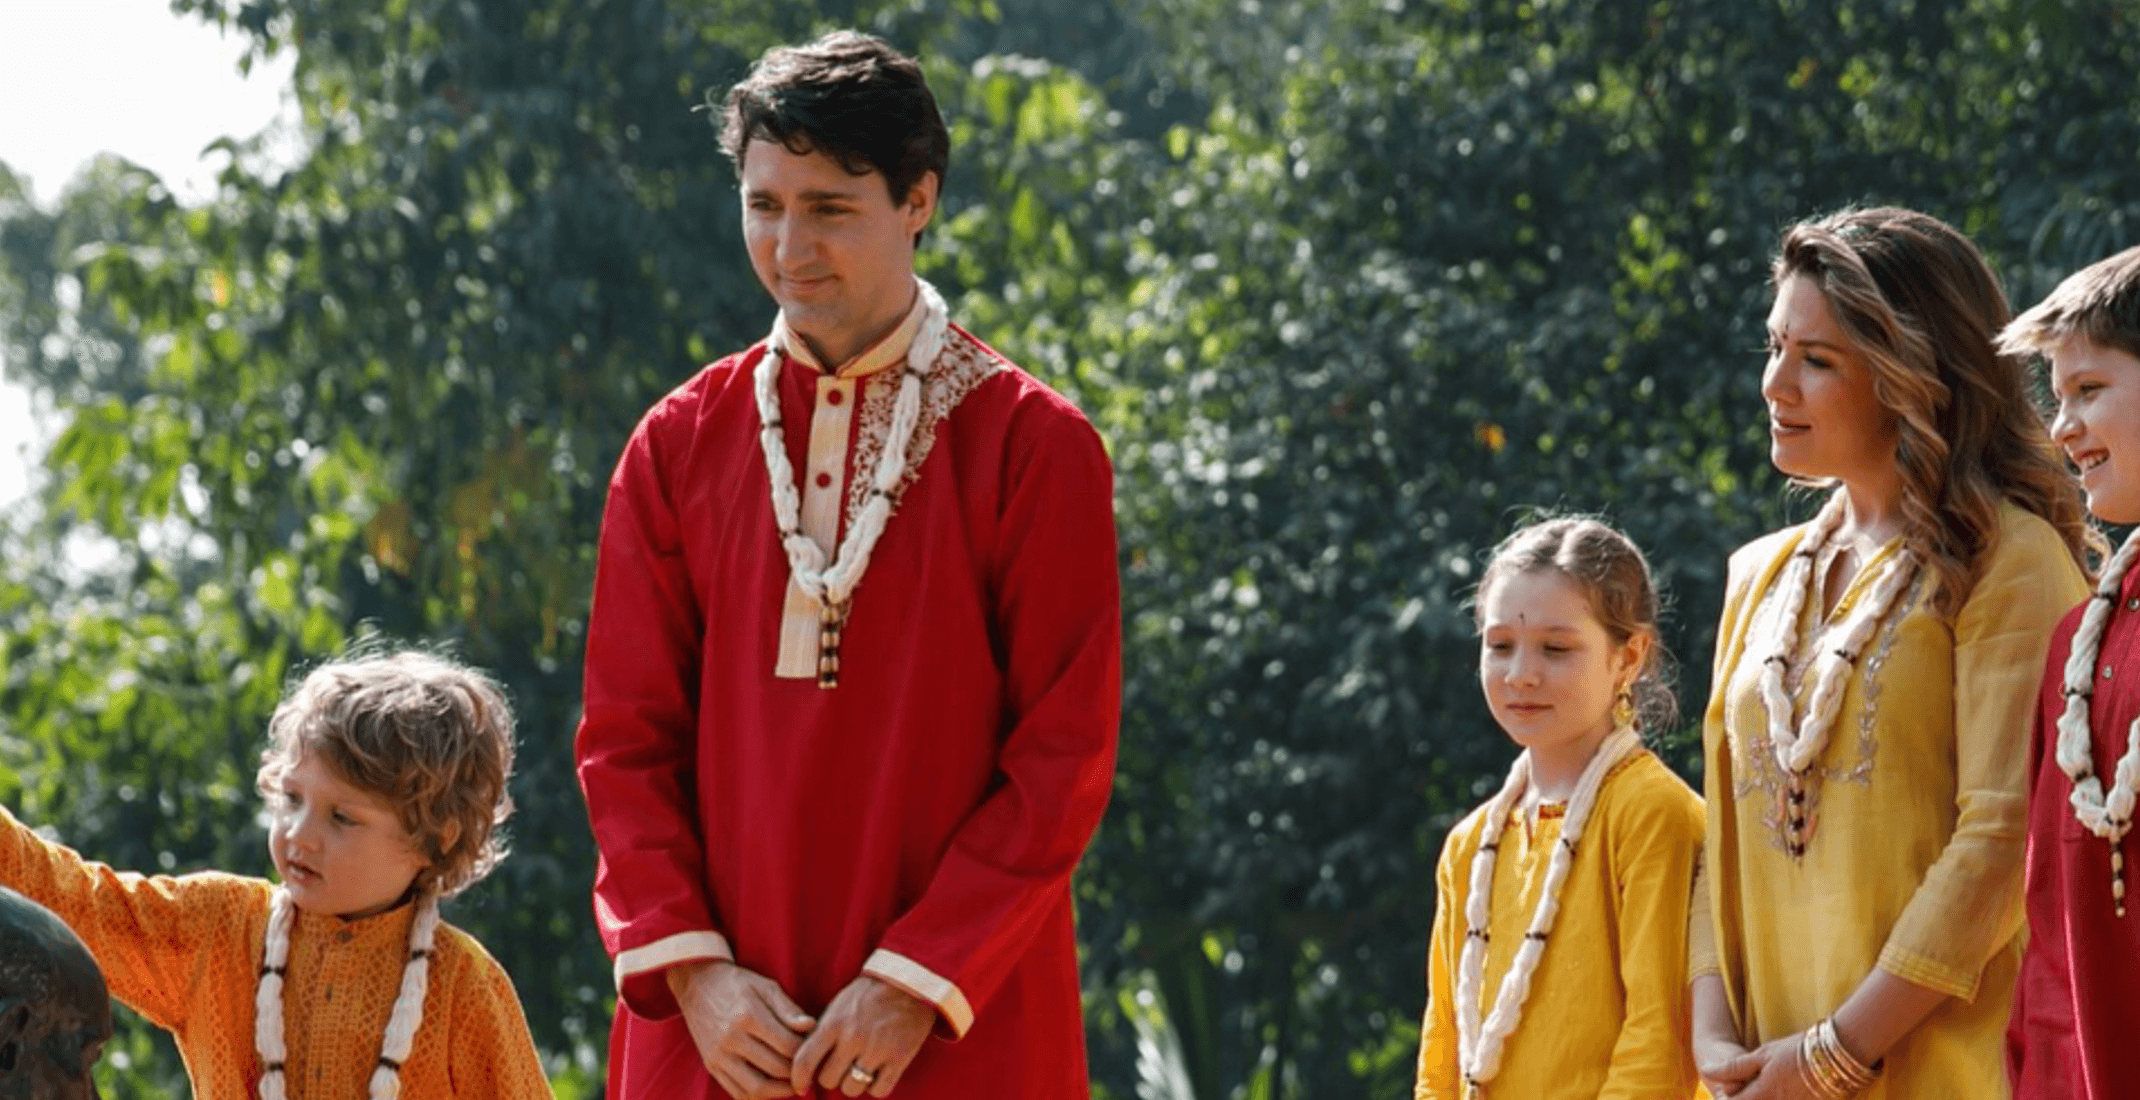 Justin Trudeau has officially gone overboard with his clothing choices in India